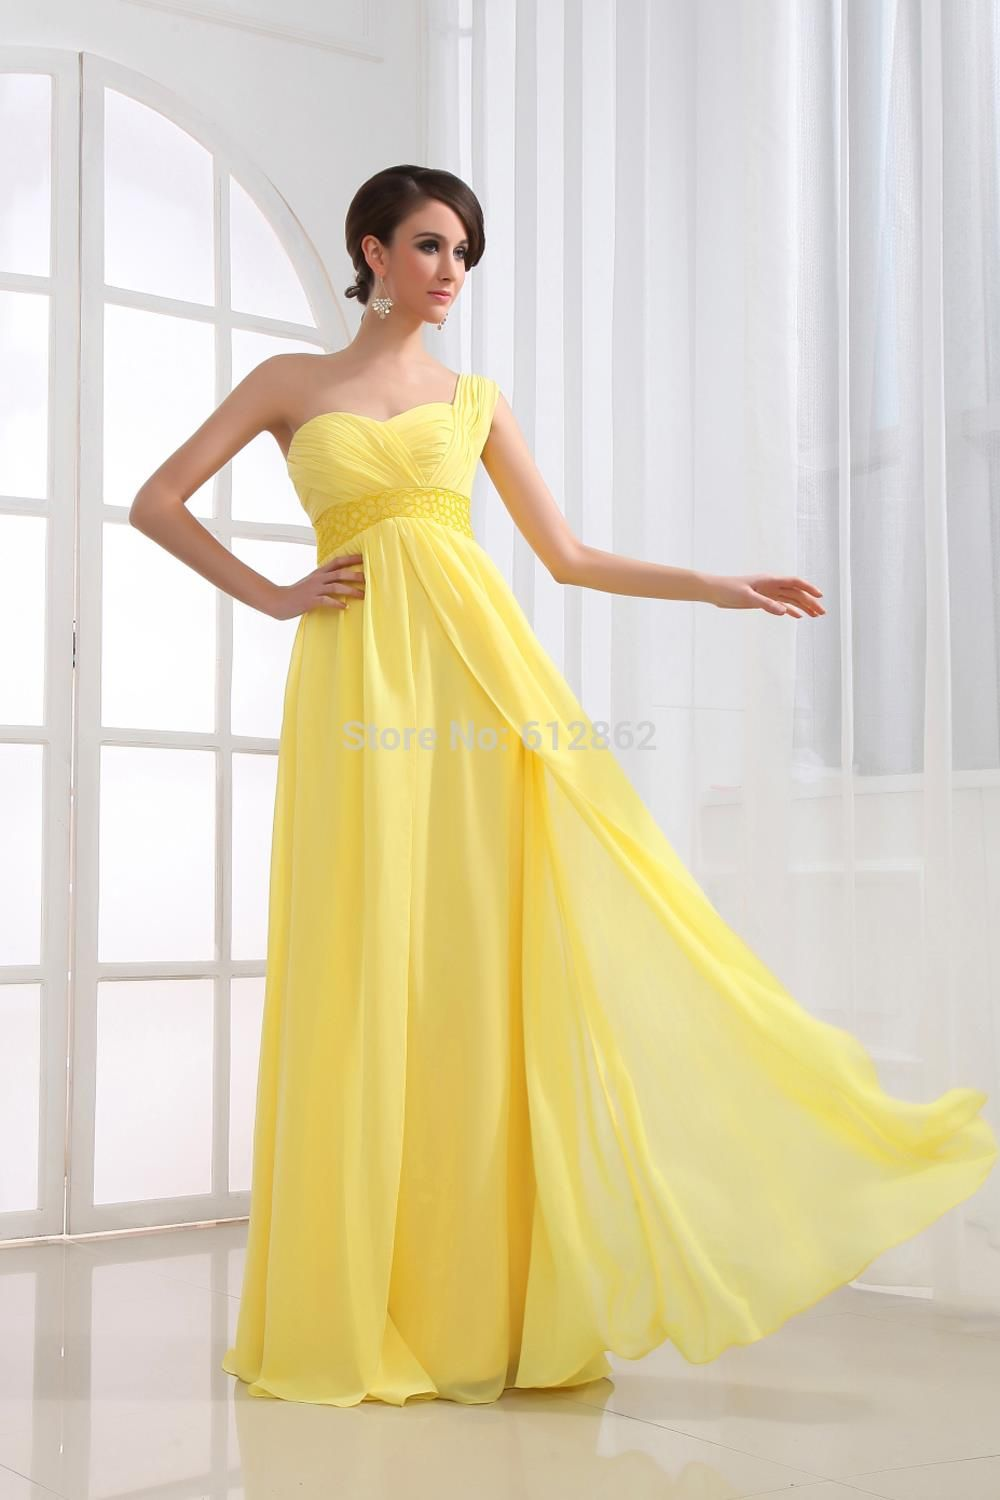 Cheap long yellow prom dress buy quality prom dresses directly